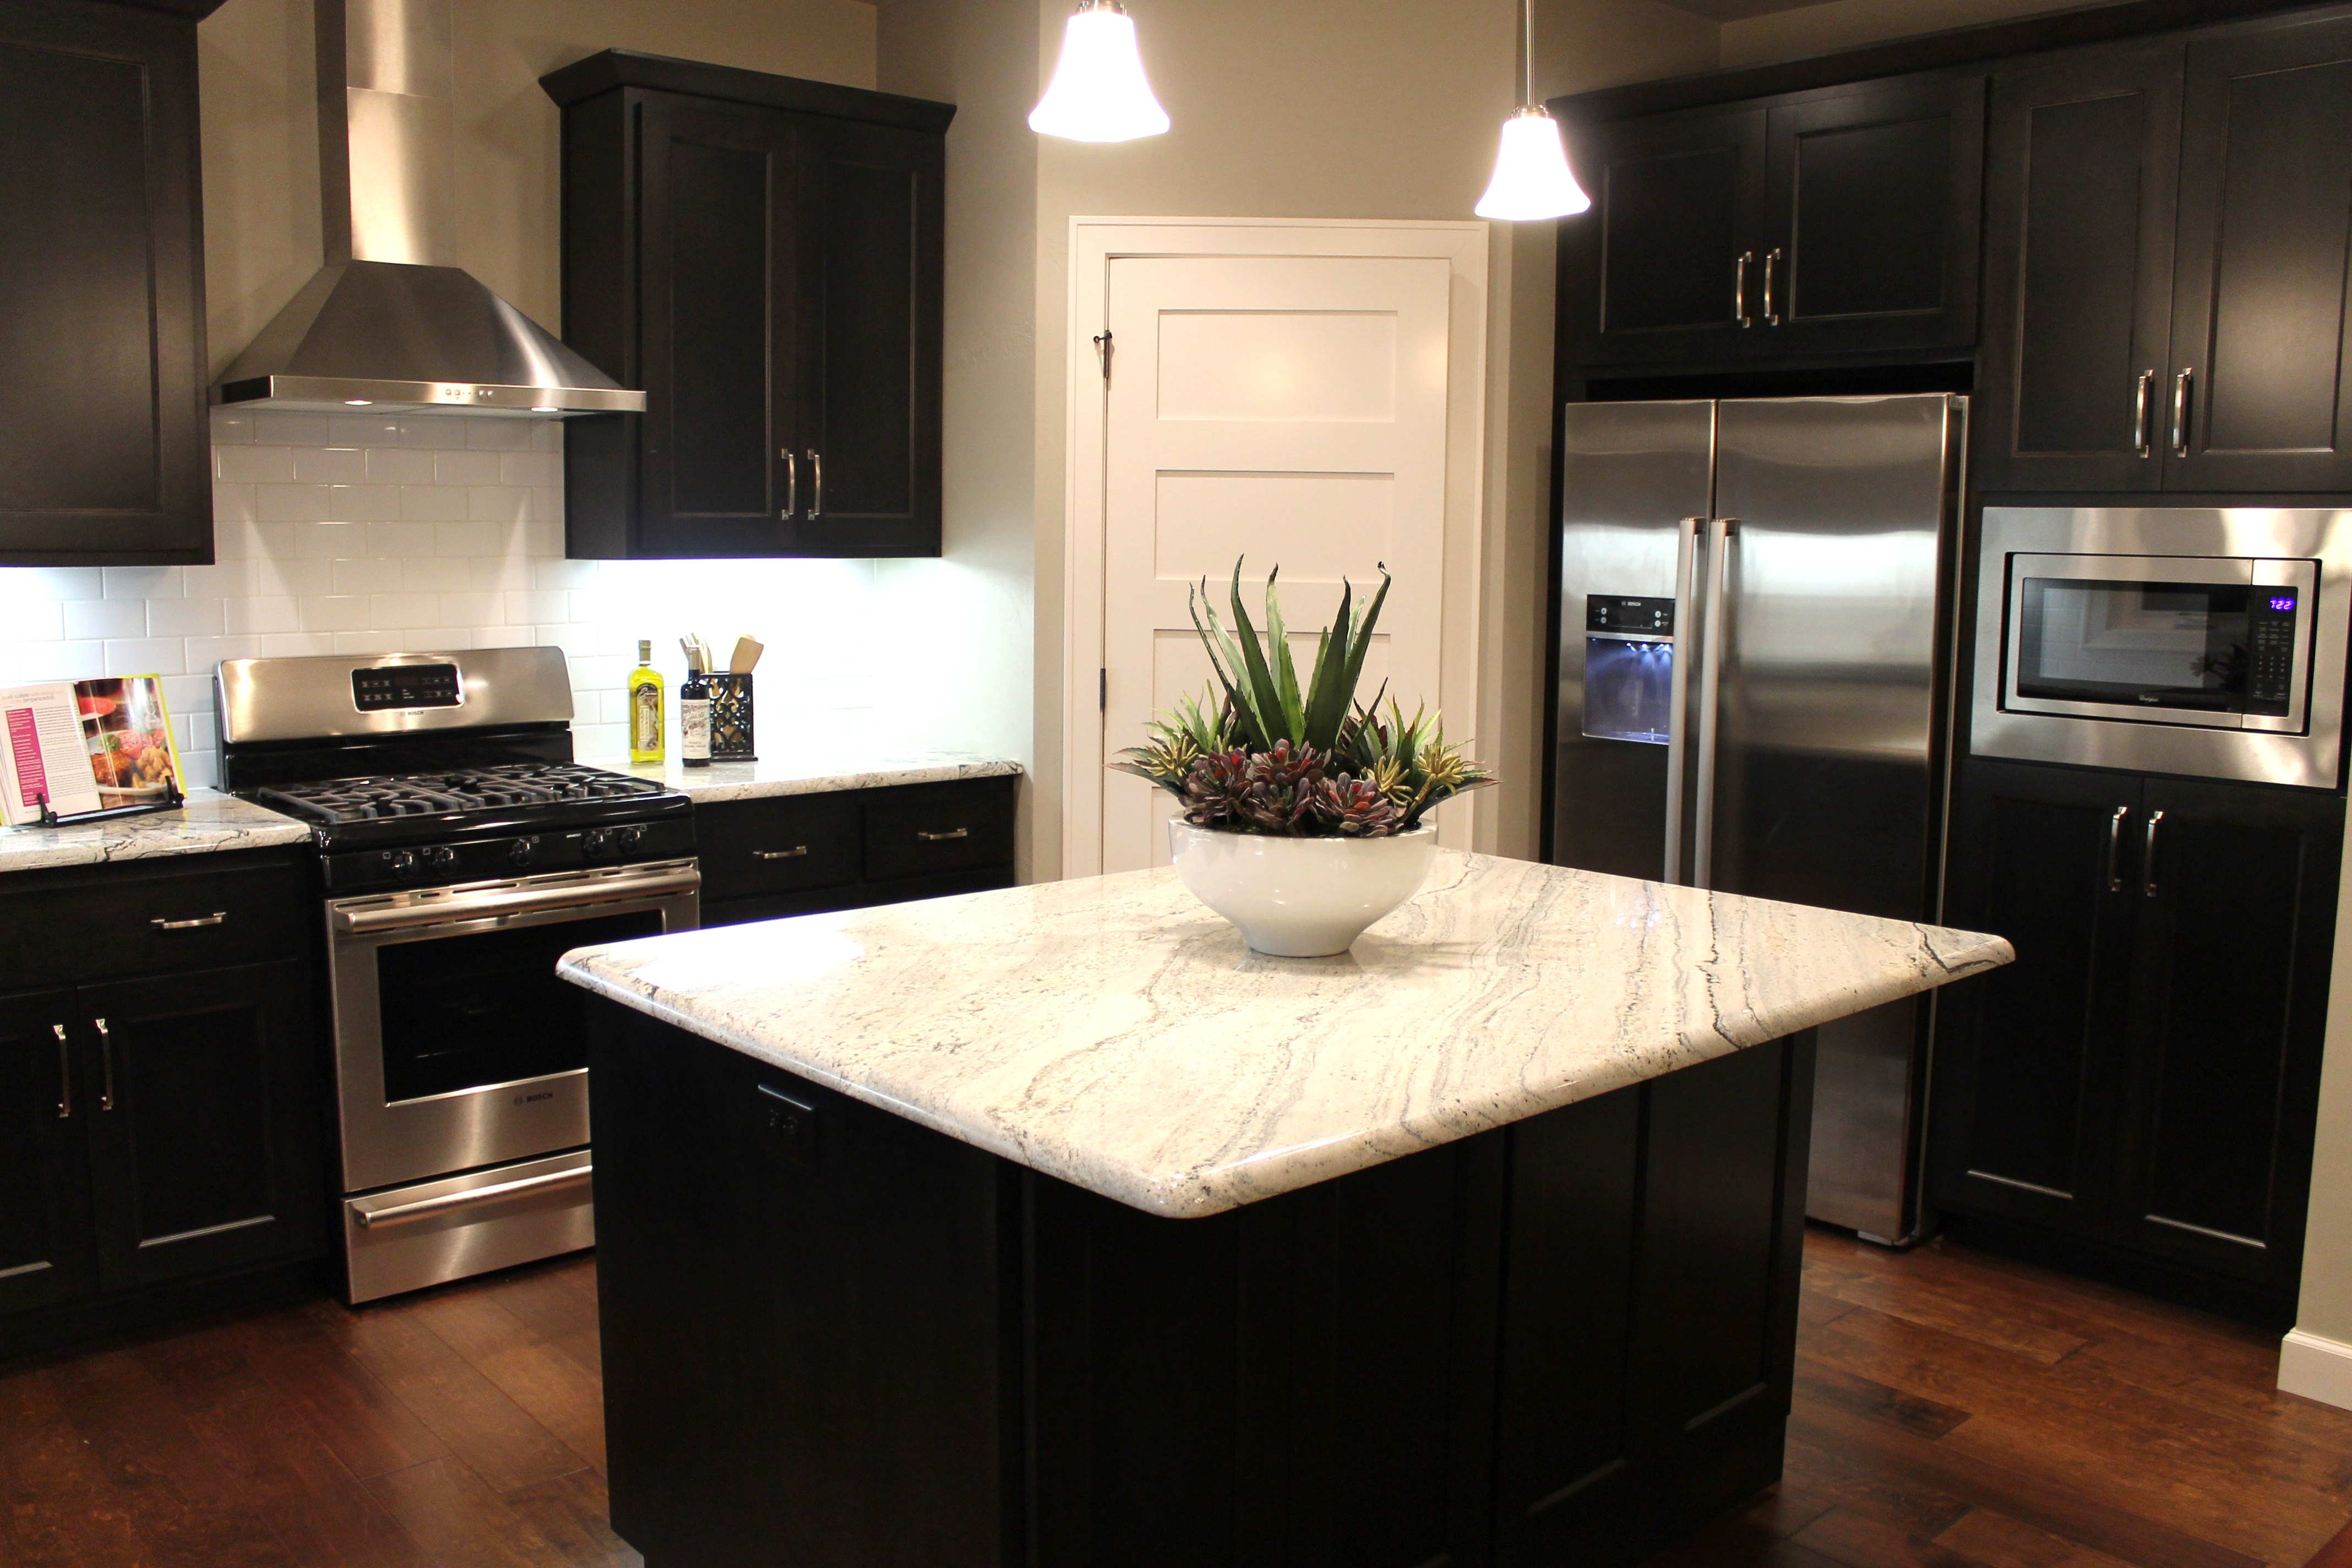 Kitchen Cabinets With Black Trim How To Choose Between Light And Dark Granite Katie Jane